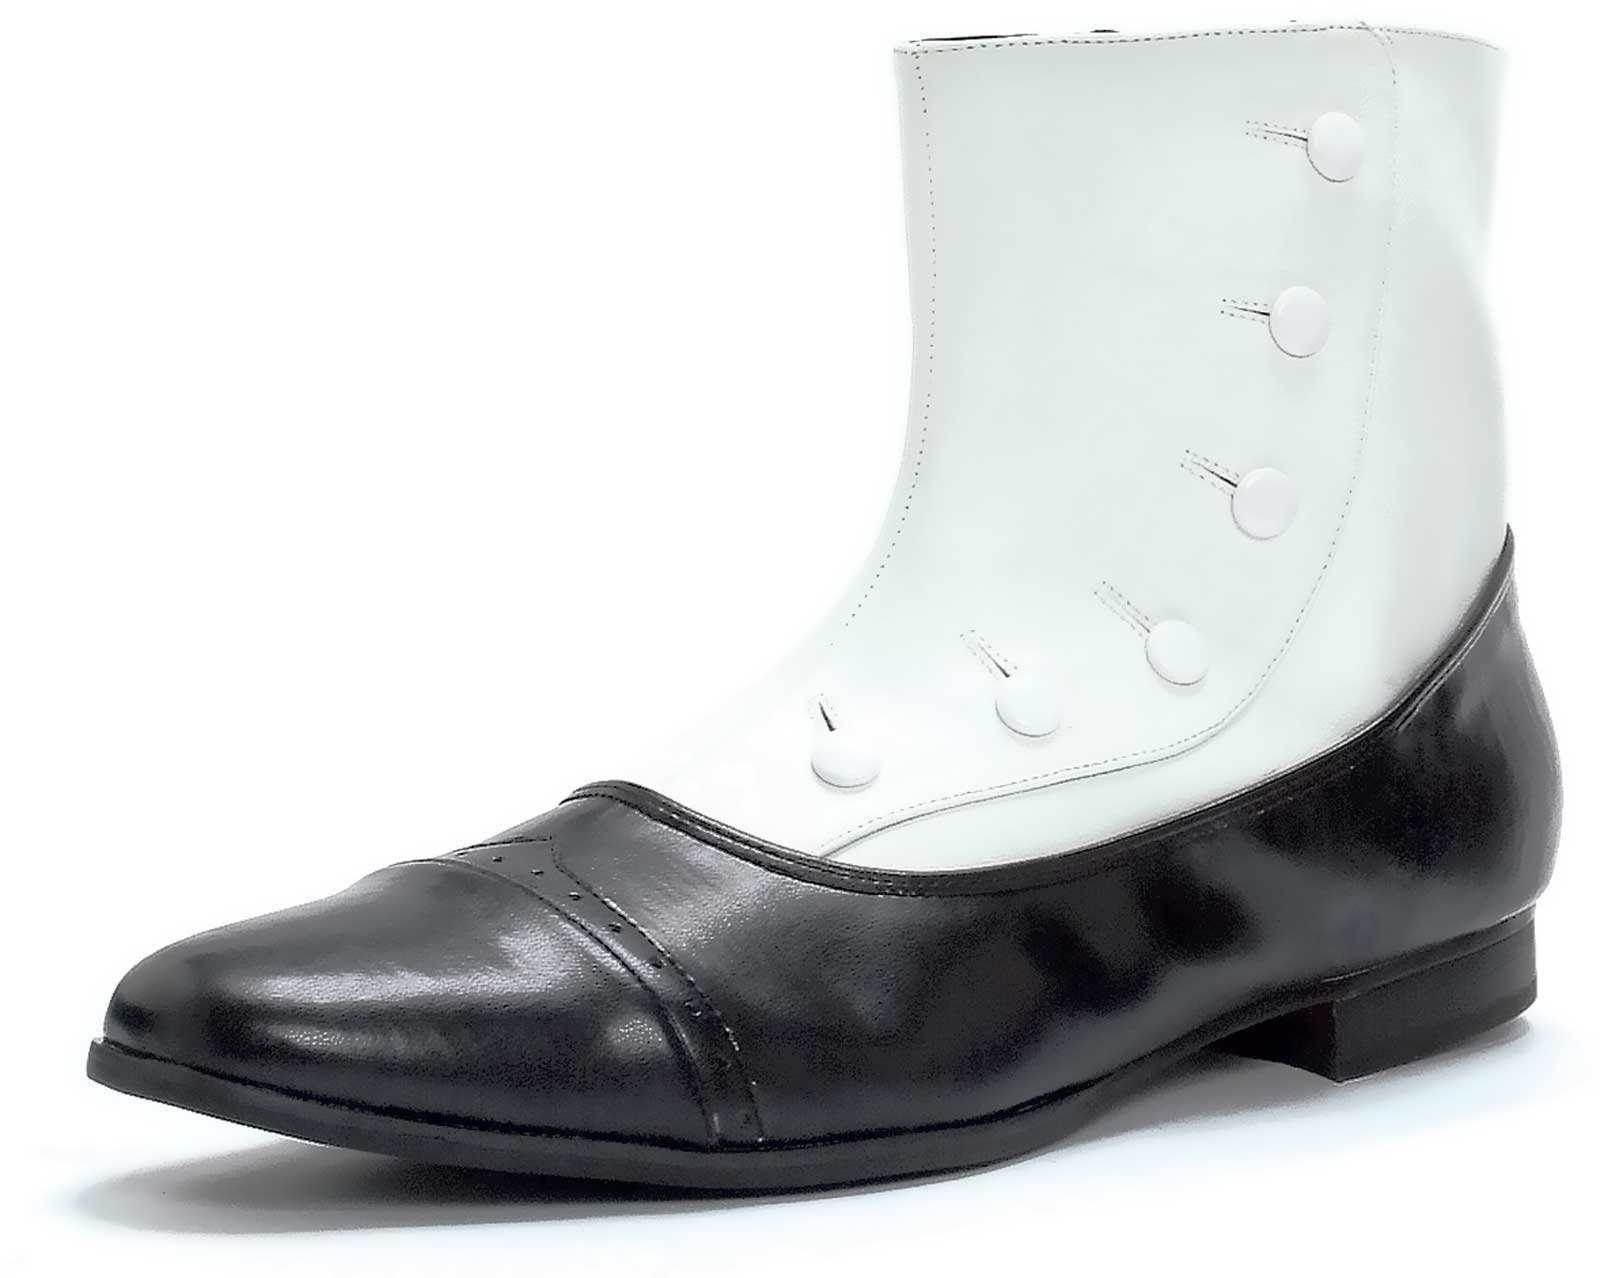 Black and White Spat Adult Shoes